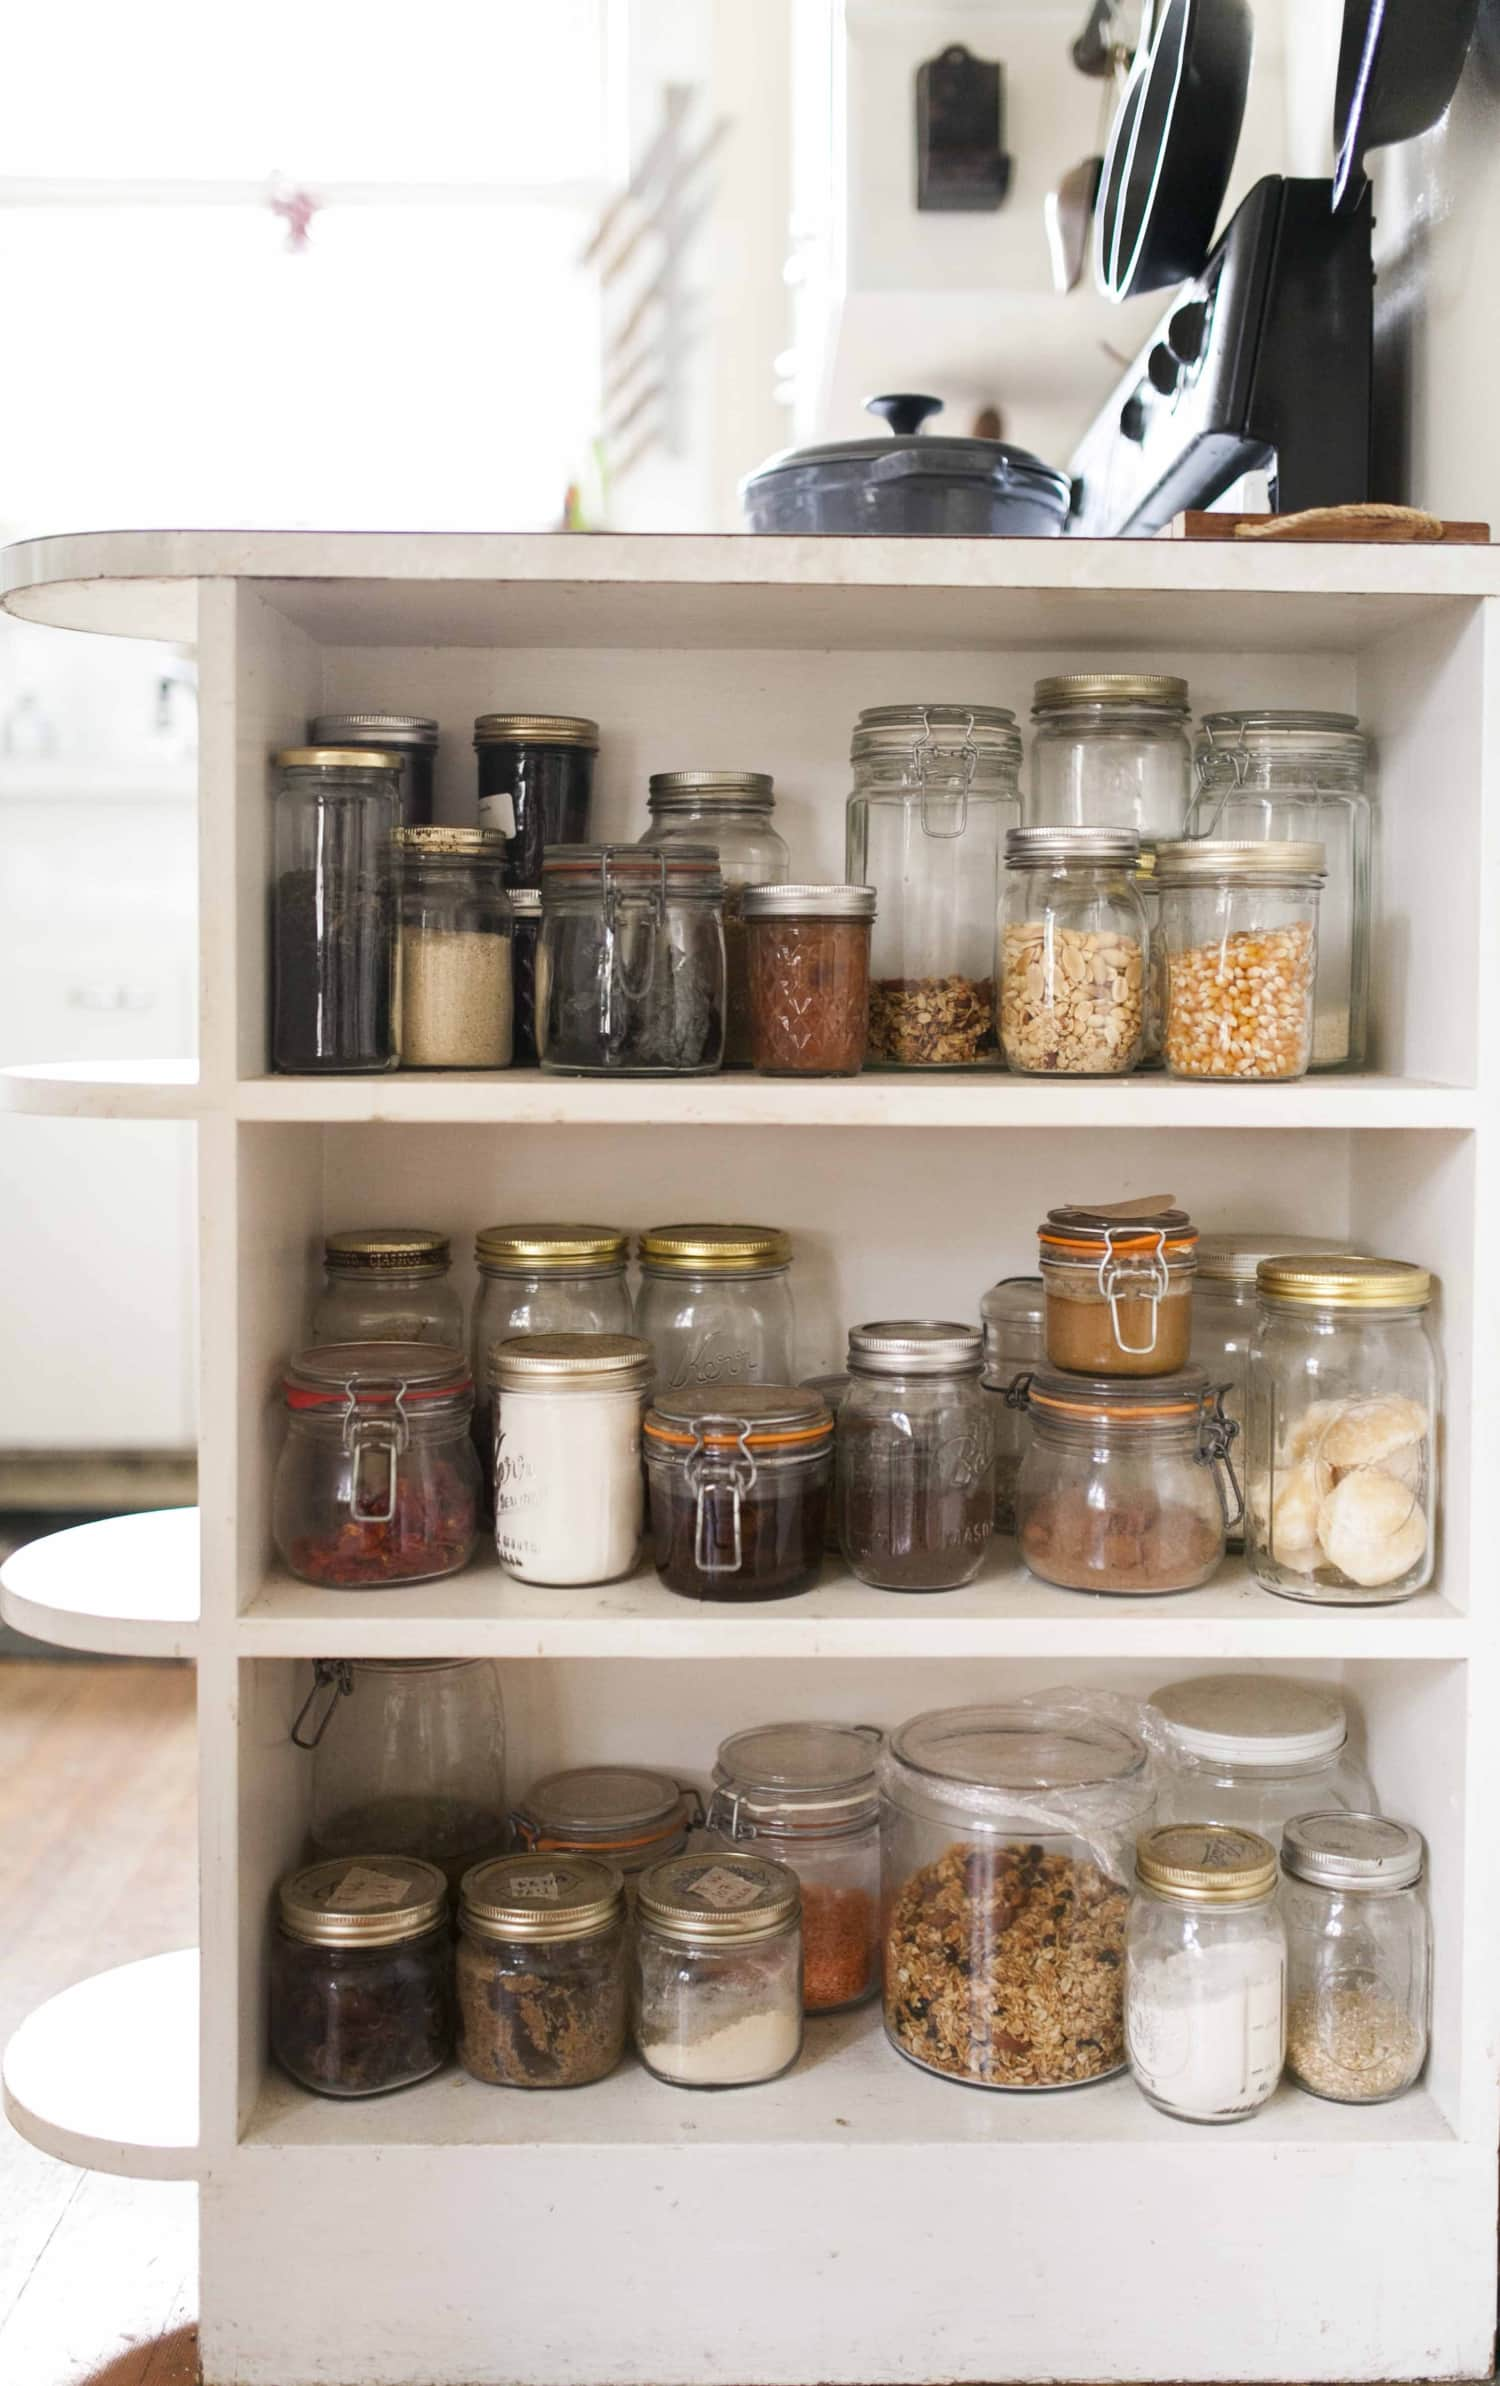 A 20-Minute Cleaning Routine to Keep Your Pantry Pest-Free